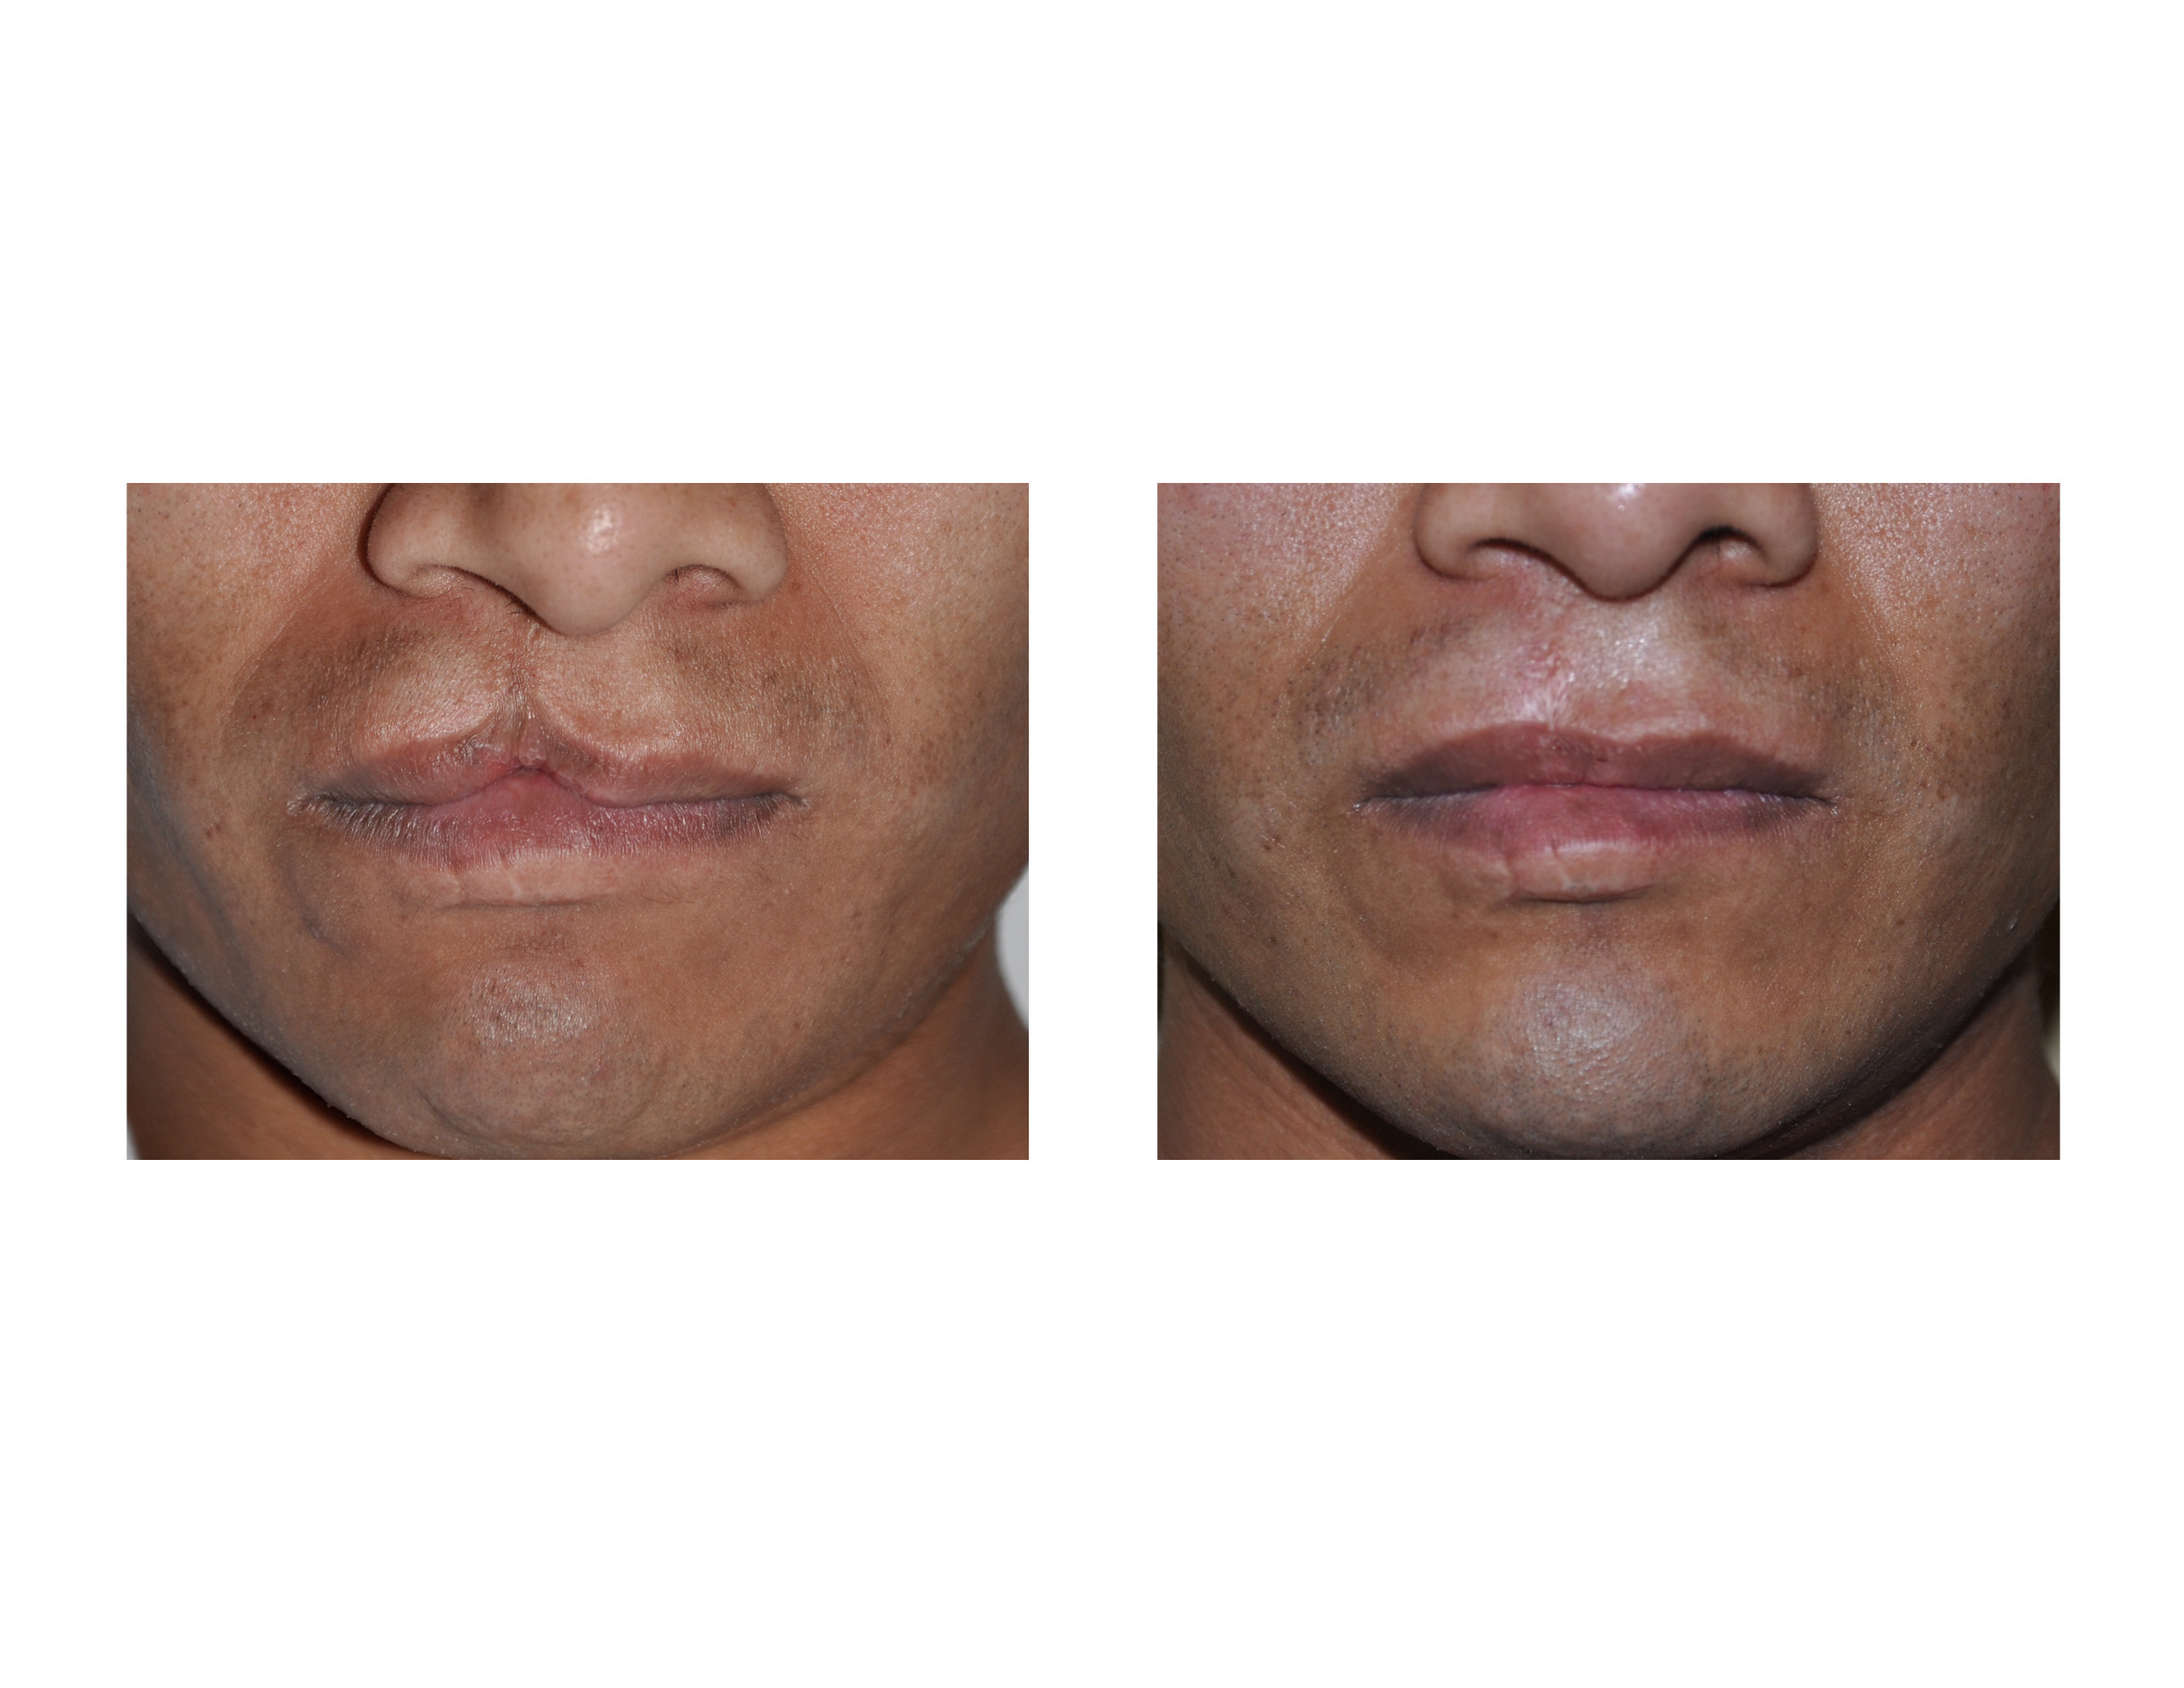 adult and repaired cleft lip